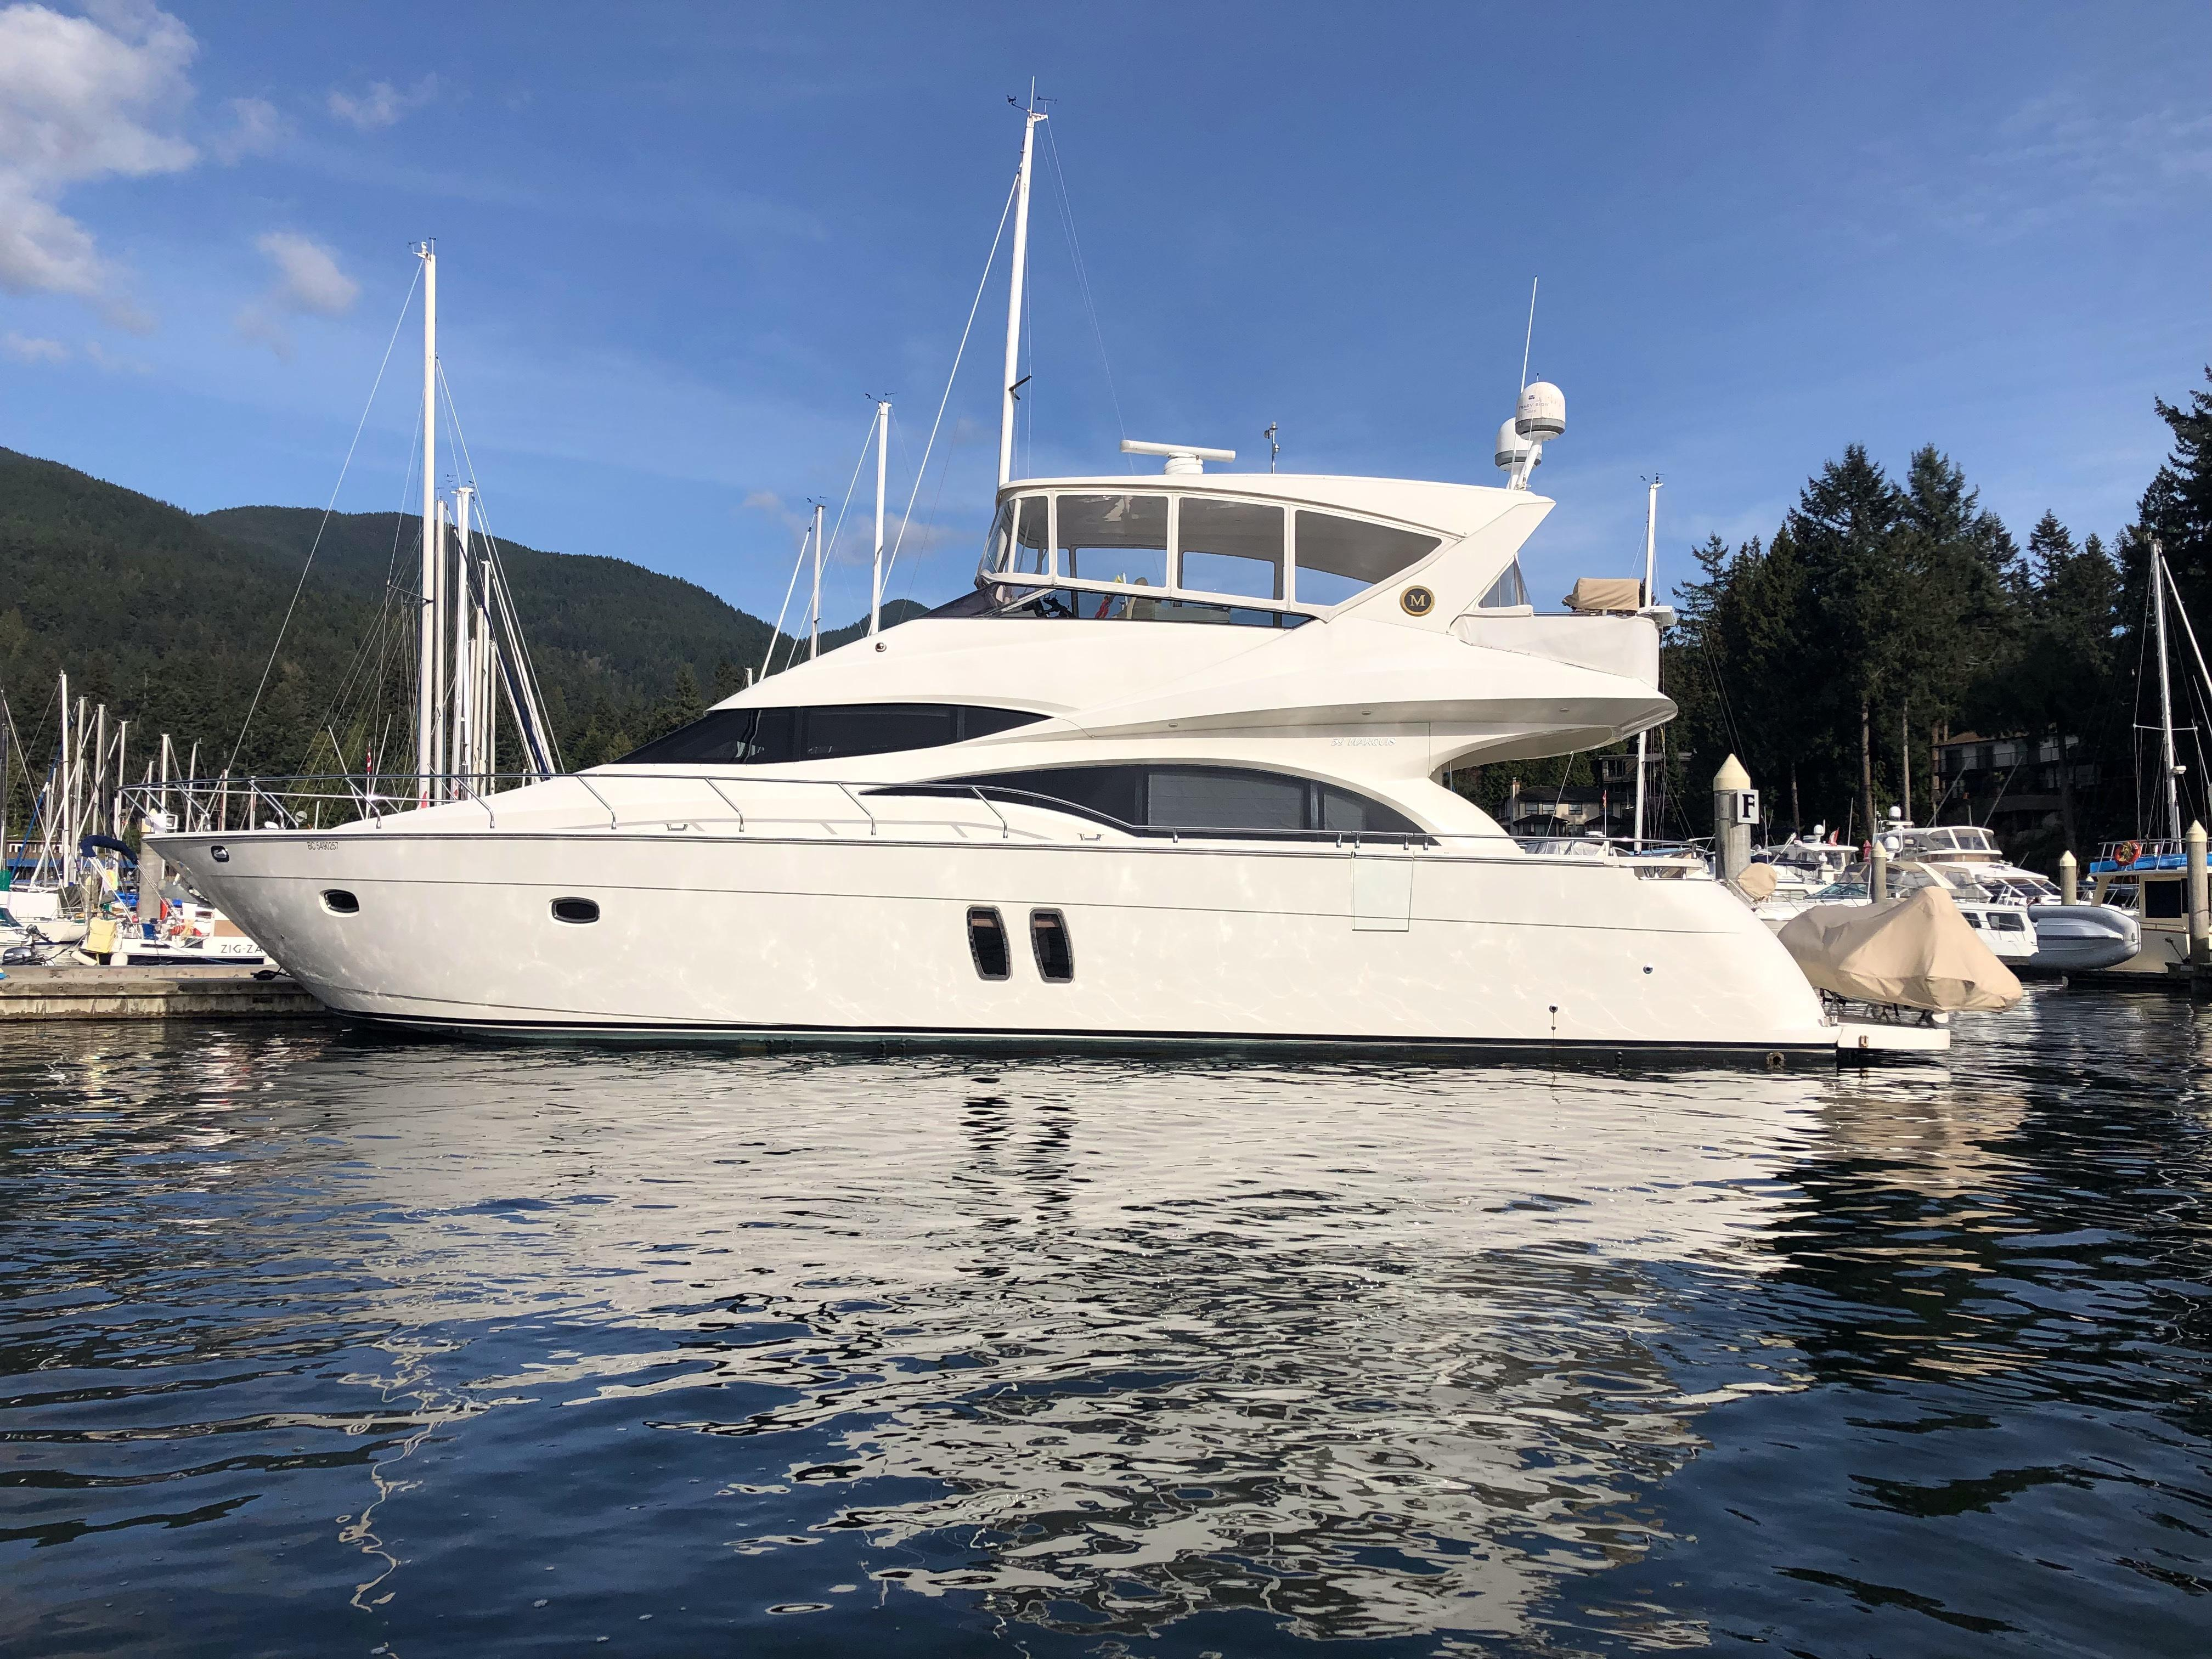 Yacht charter Marquis 59 - Canada, Vancouver, Nanaimo